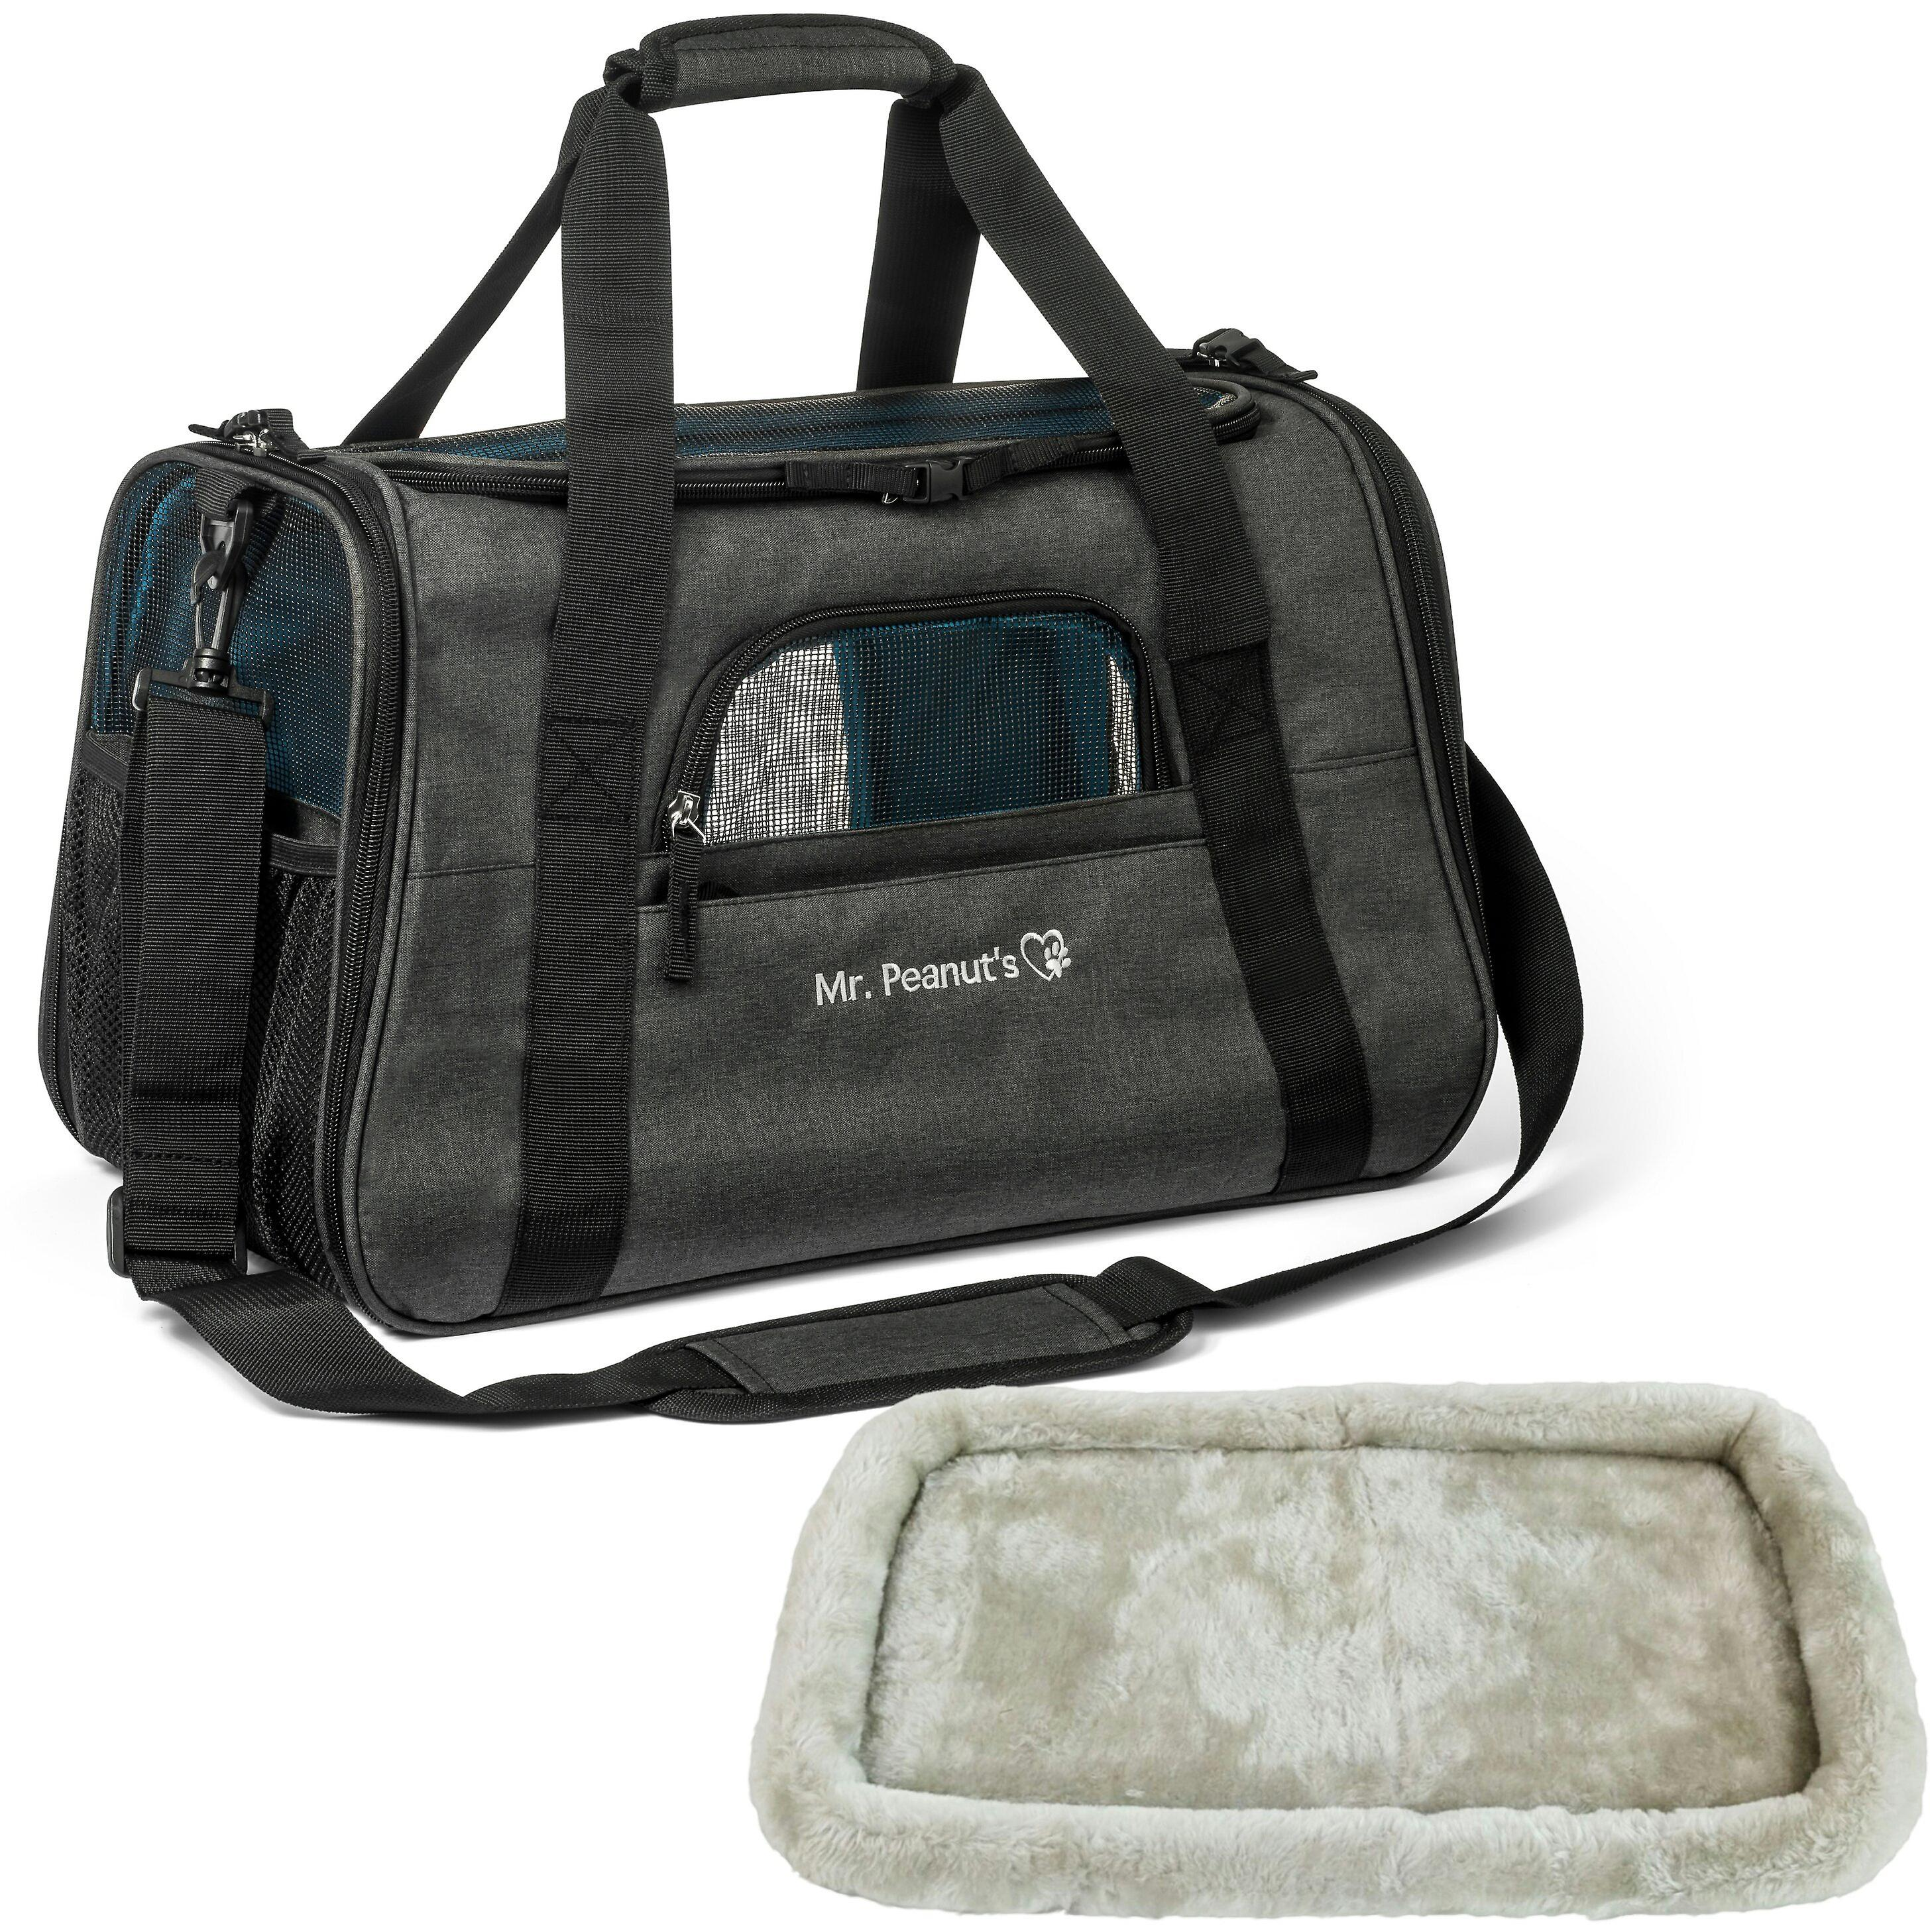 Diamond series plush airline approved pet carrier